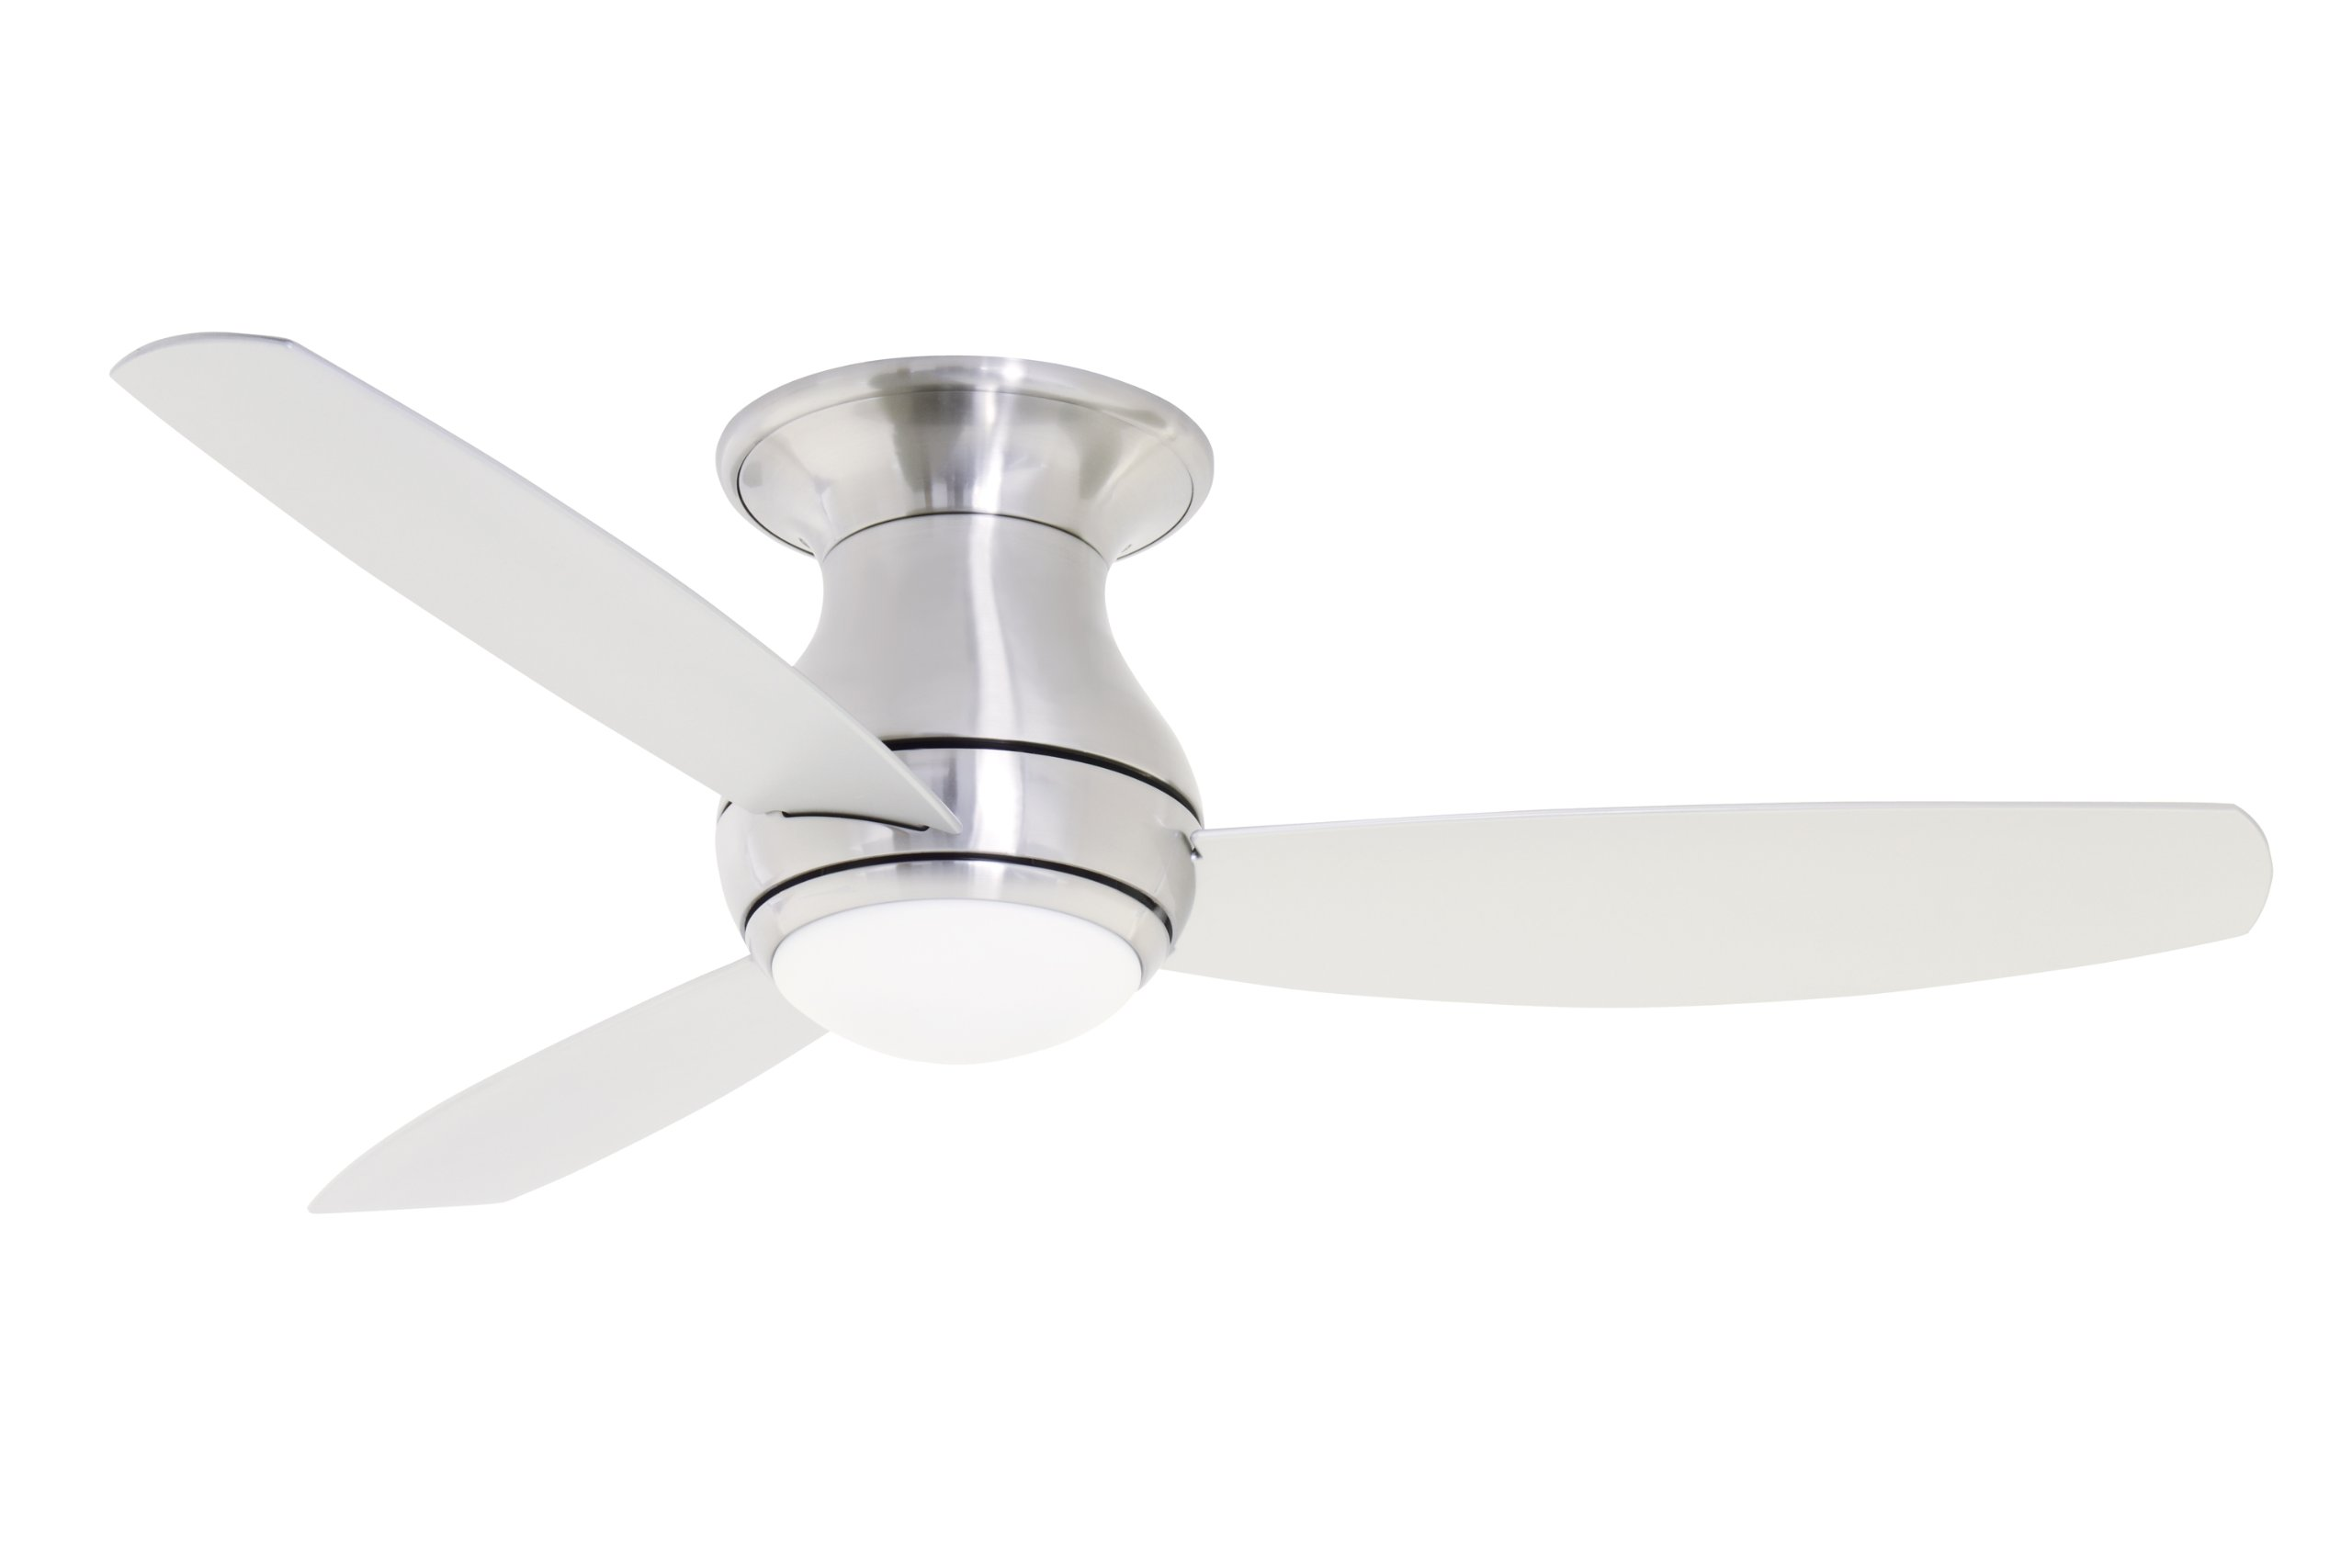 Emerson Ceiling Fans CF144BS Curva Sky Modern Ceiling Fan With Light And Remote, 44-Inch Blades, Brushed Steel Finis